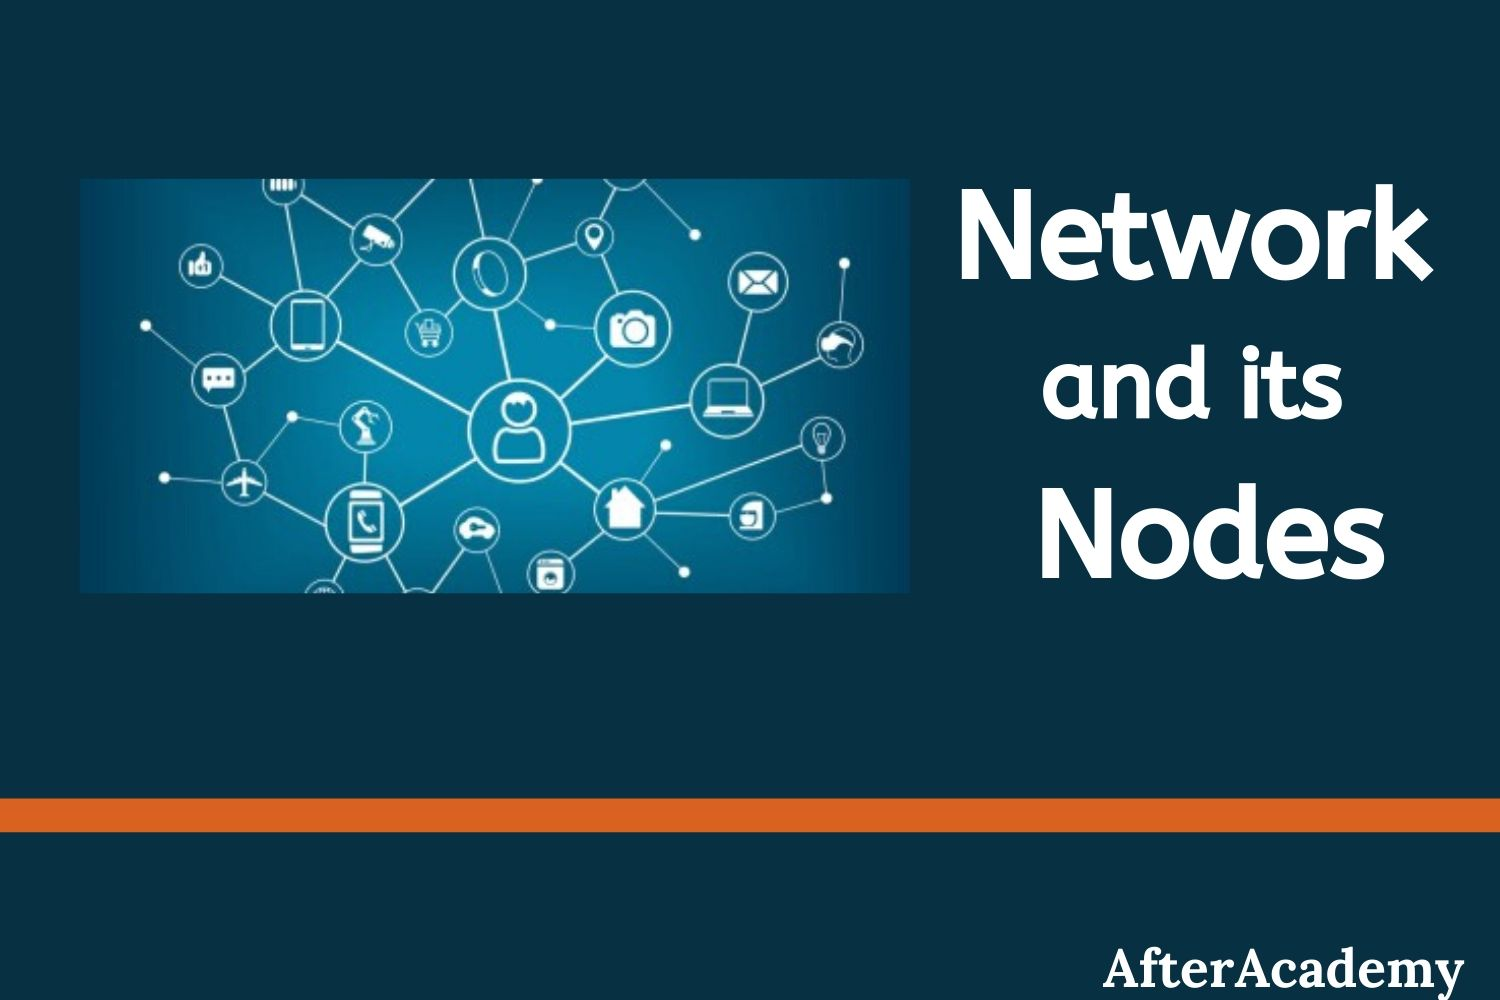 What is a network and what are the nodes present in a network?